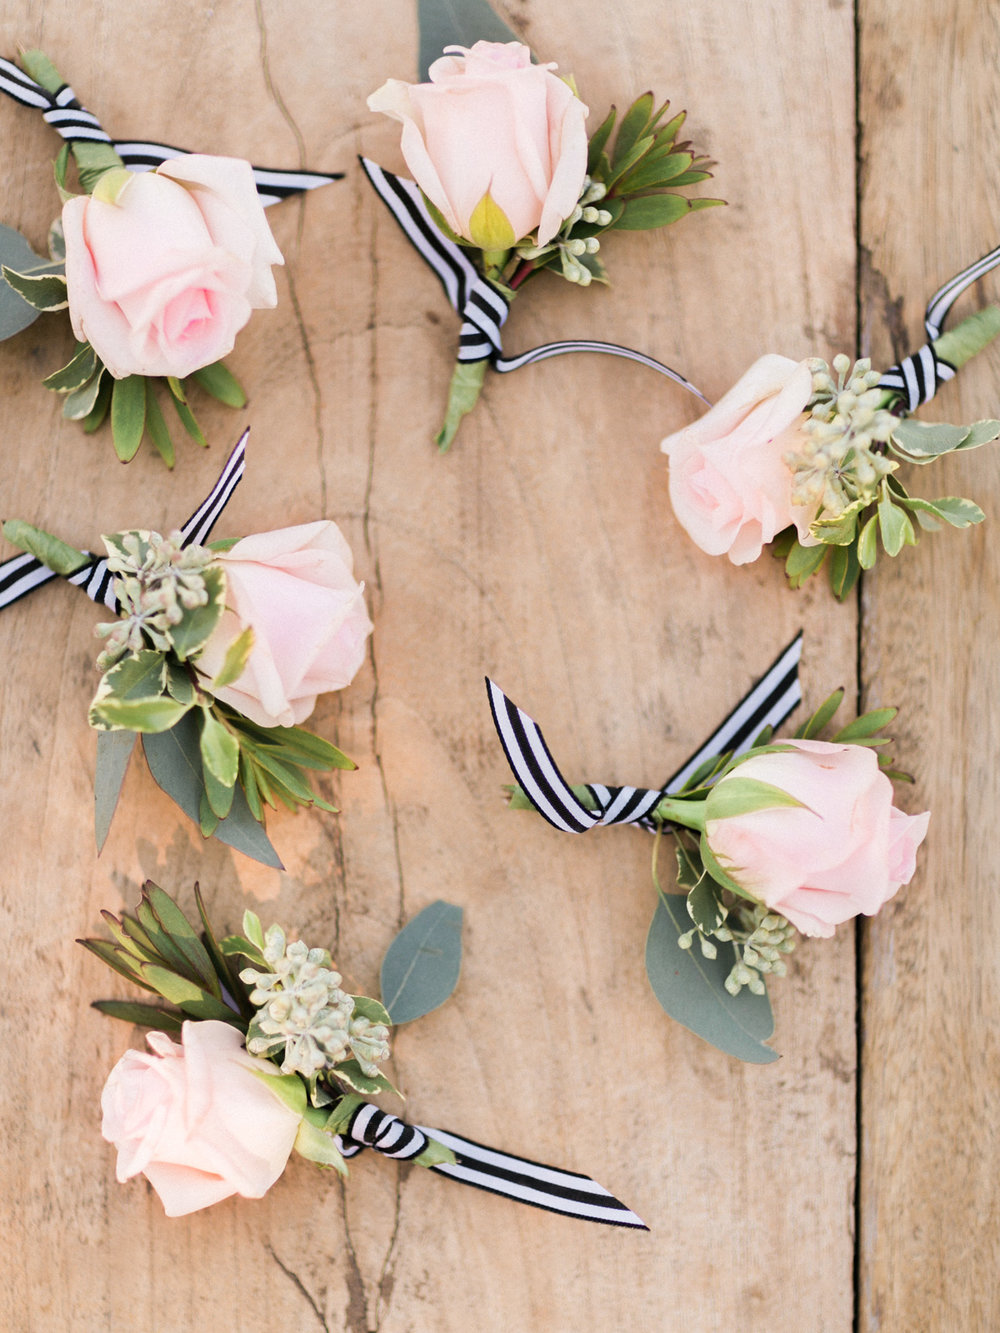 blush boutonnieres with striped black and white ribbon